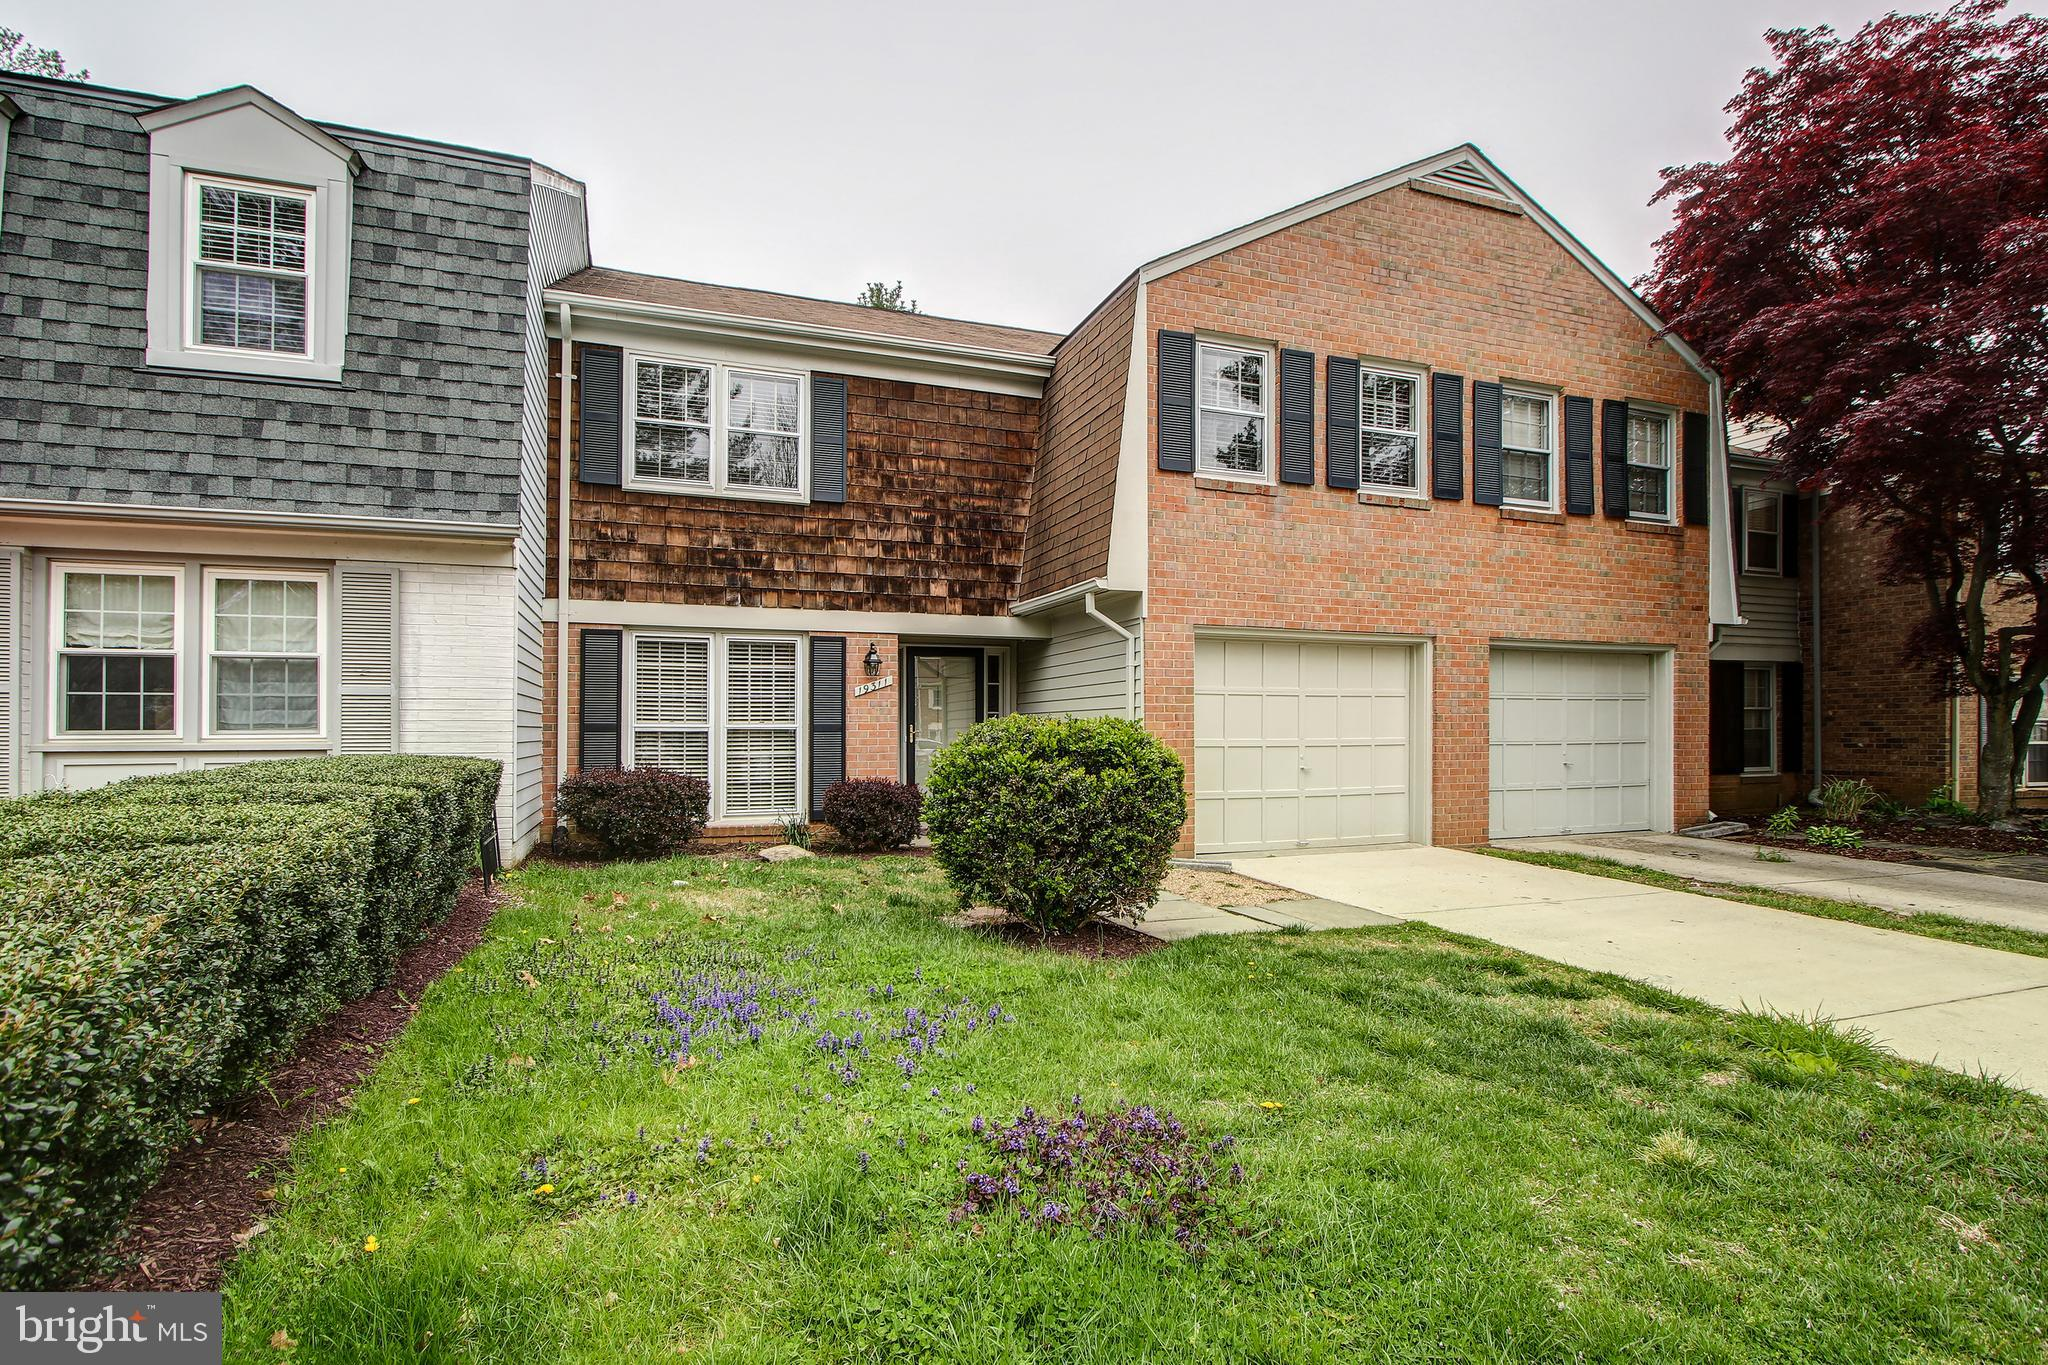 19311 Frenchton Place, Montgomery Village, MD 20886